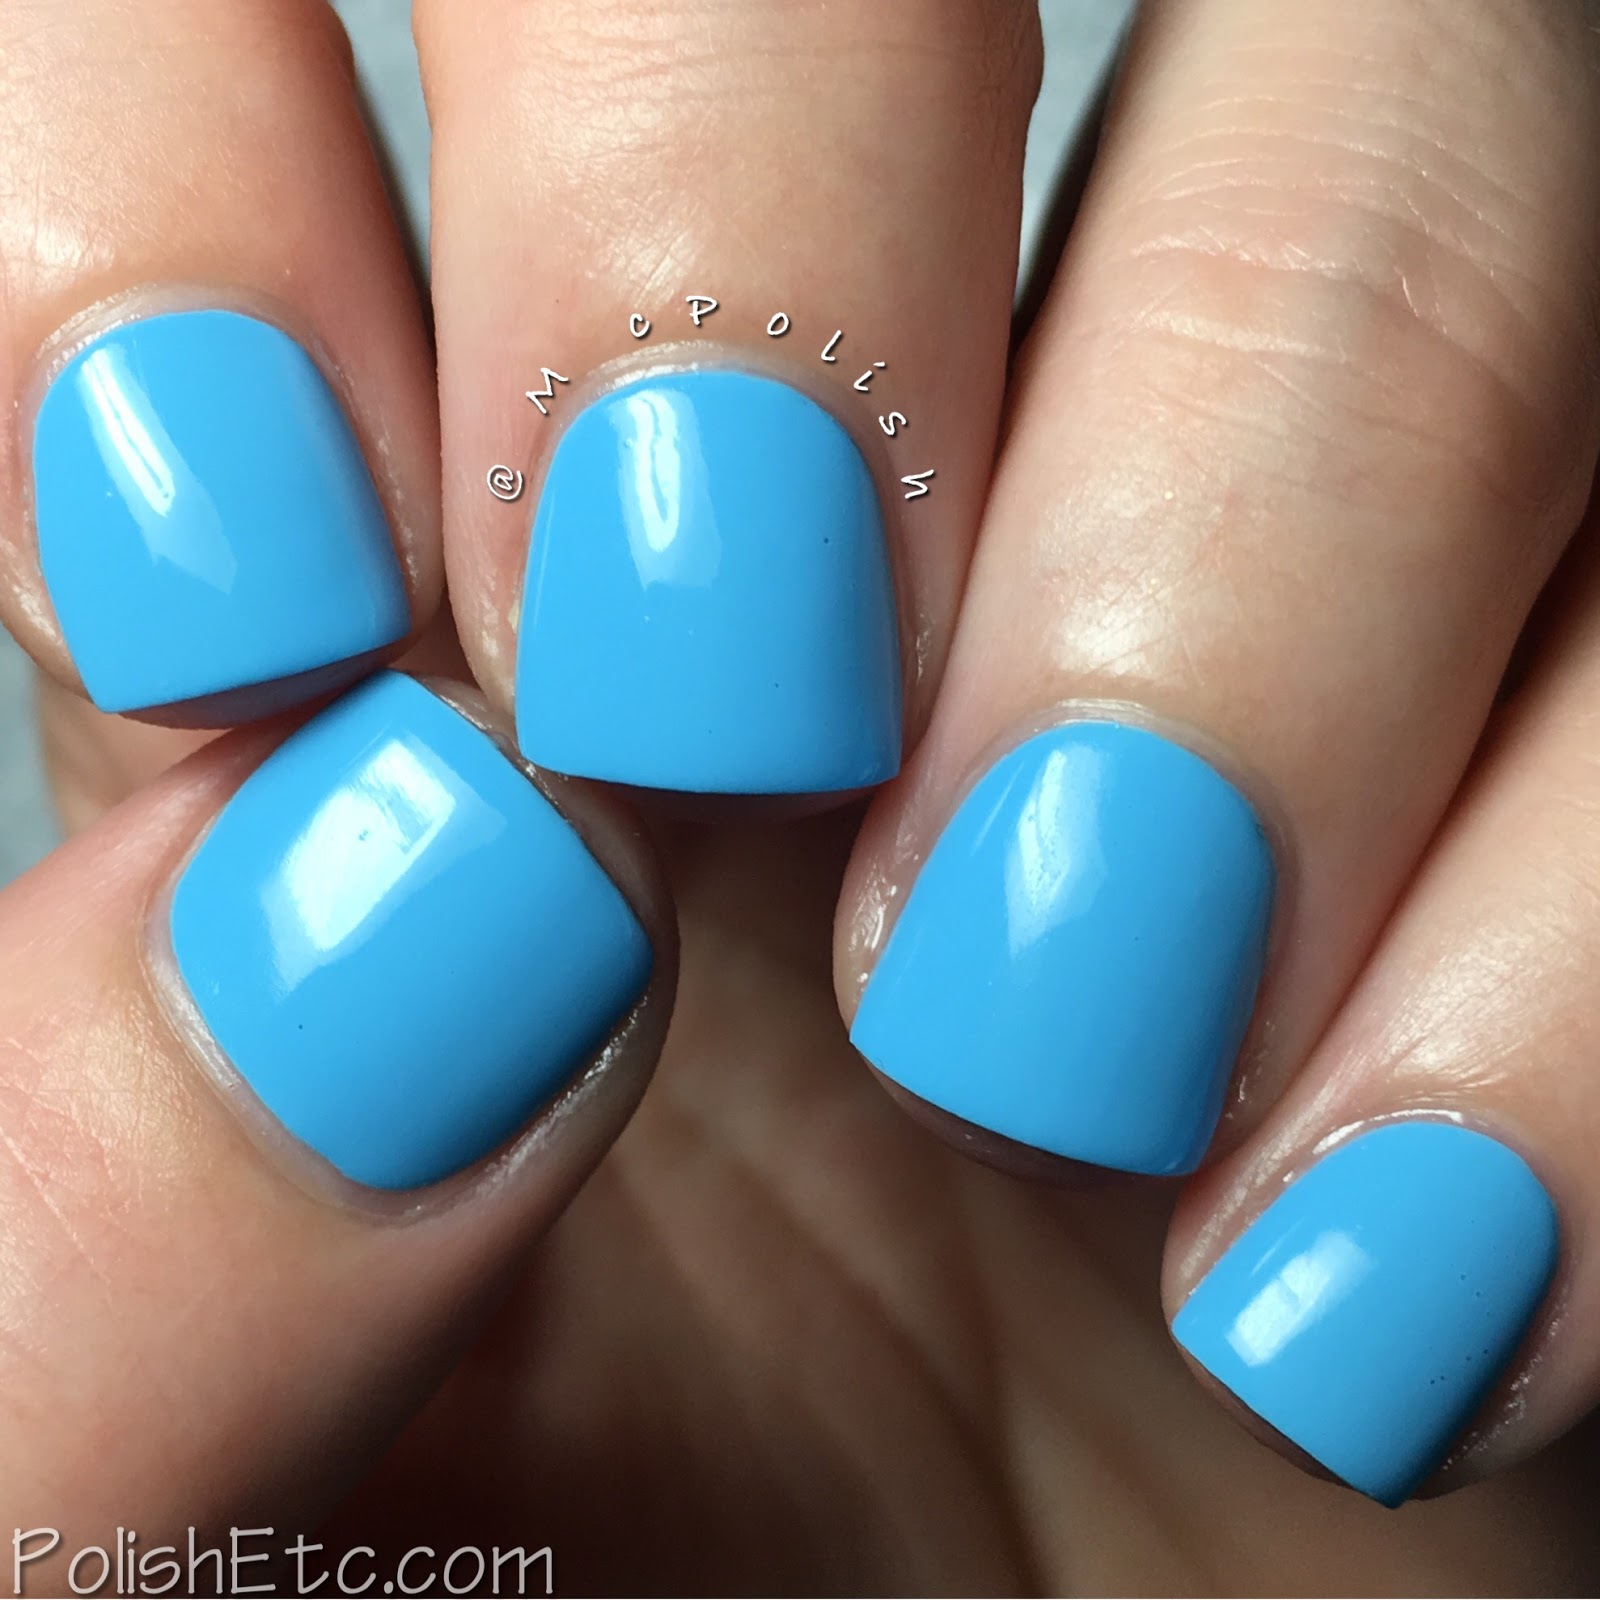 Kiara Sky Nail Lacquer - McPolish - After the Reign